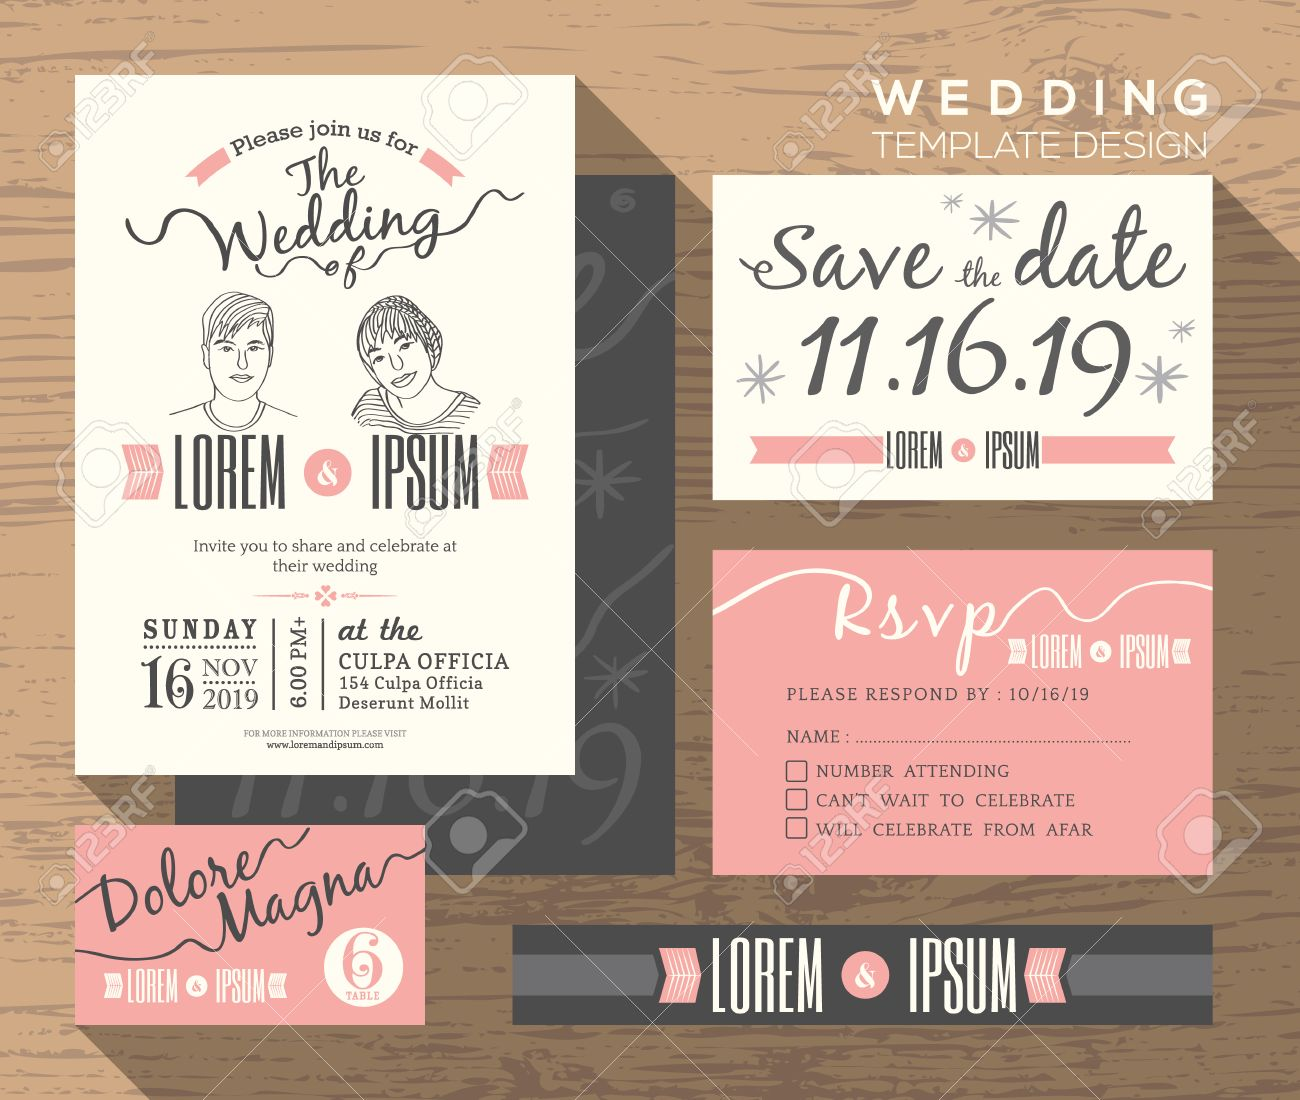 Wedding Invitation Set Design Template Vector Place Card Response – Wedding Save the Date Free Templates